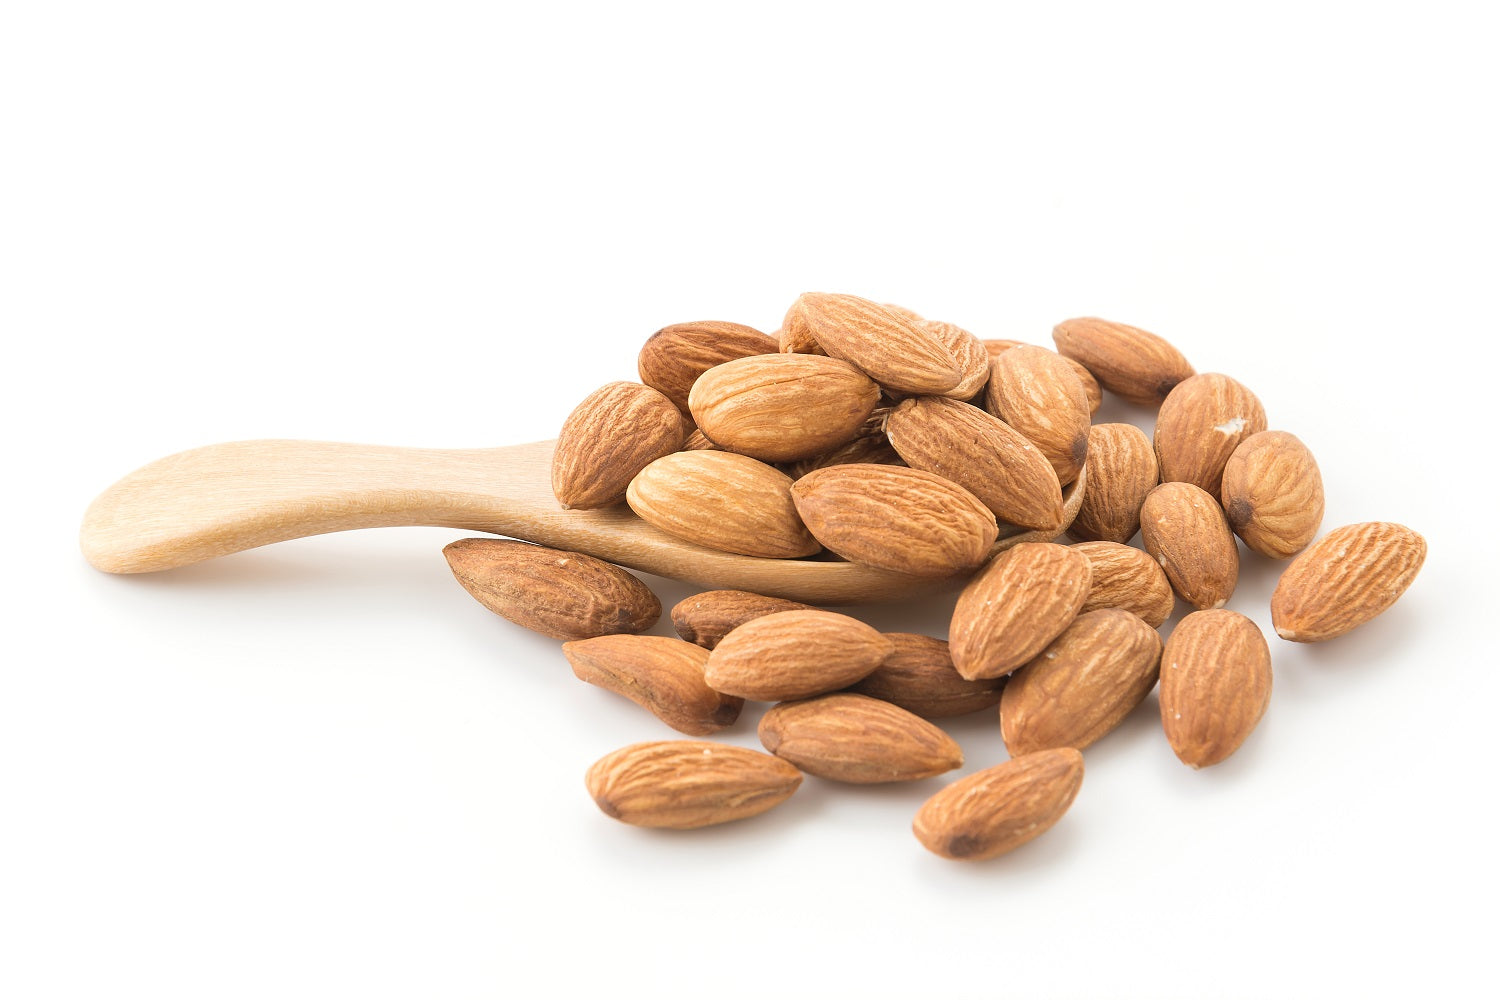 Benefits of almond powder on skin